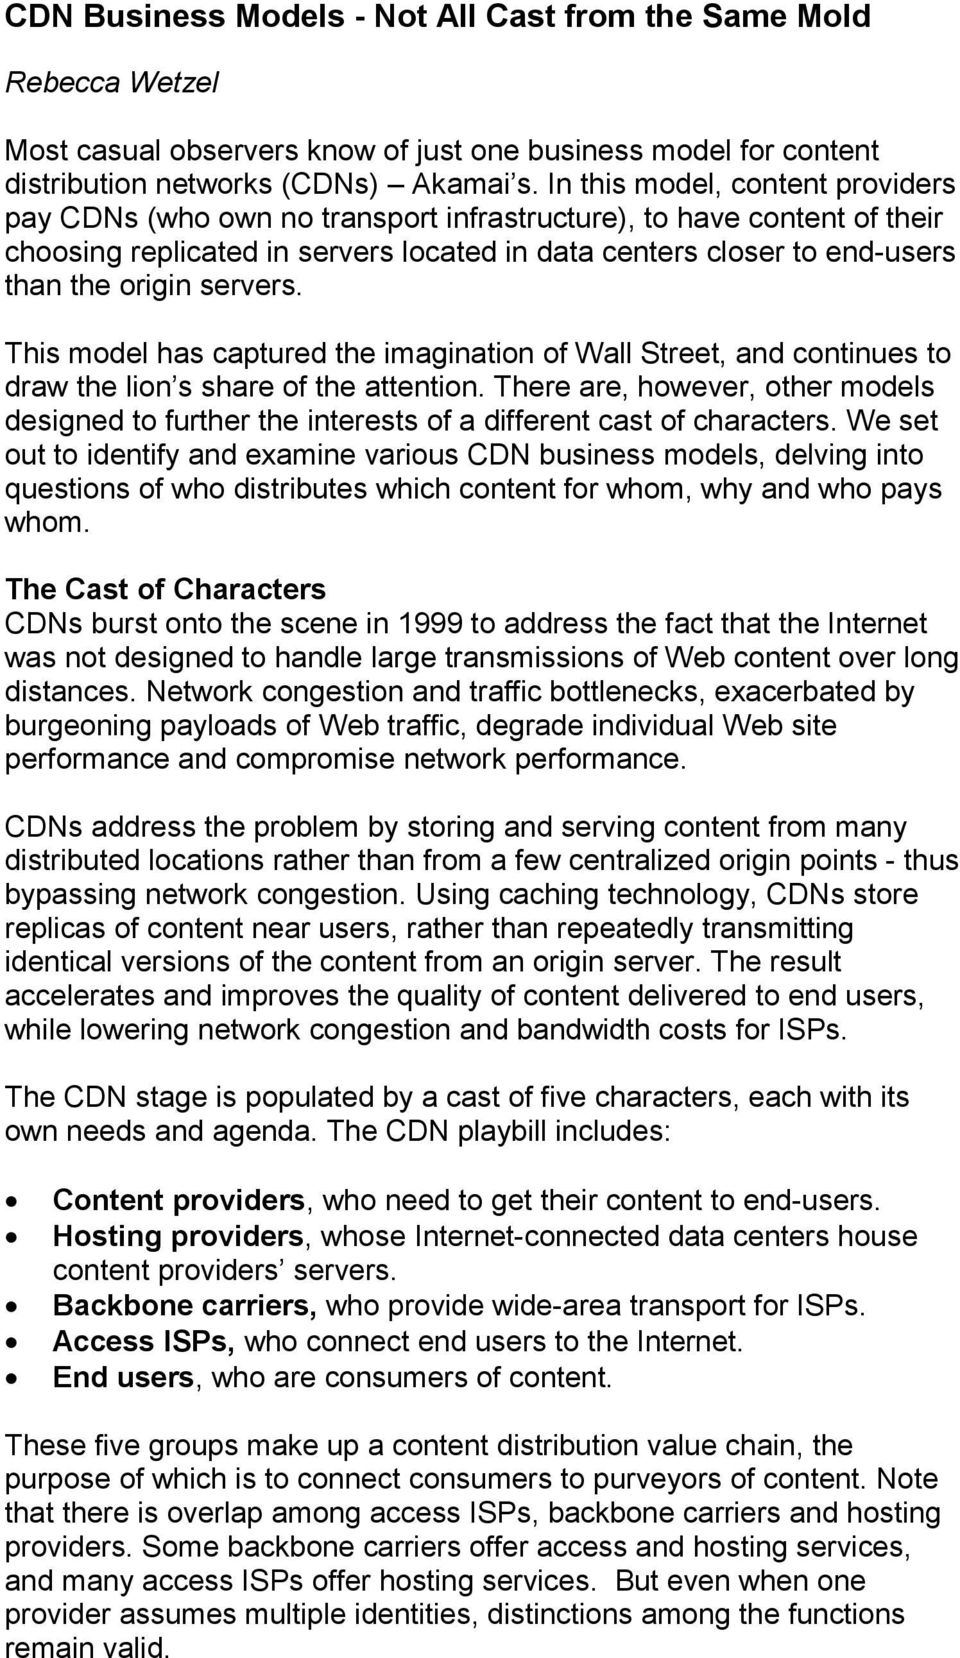 CDN Business Models - Not All Cast from the Same Mold - PDF